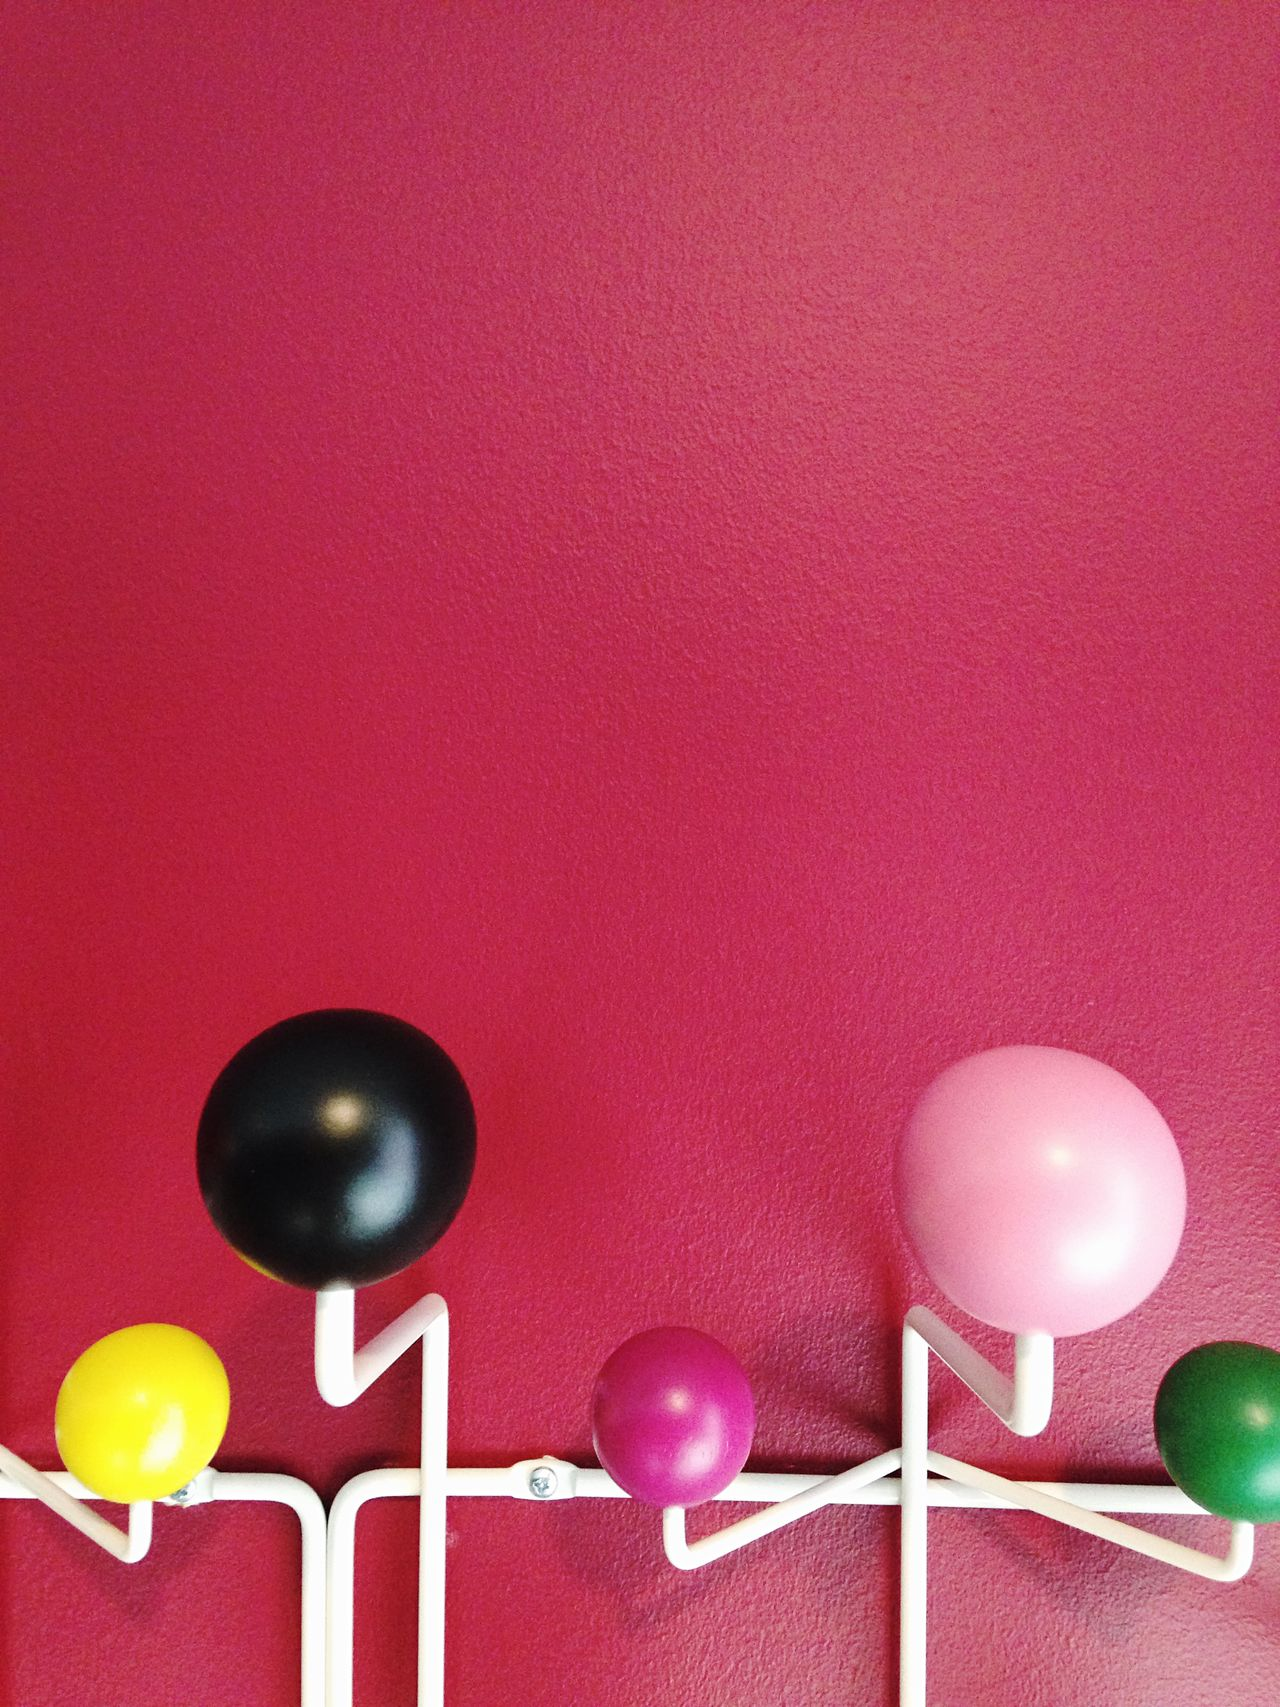 Dark Pink By Motorola Pink Wall ♡♥♡ Colorful Wooden Balls Metal Hook White Metal IPhoneography